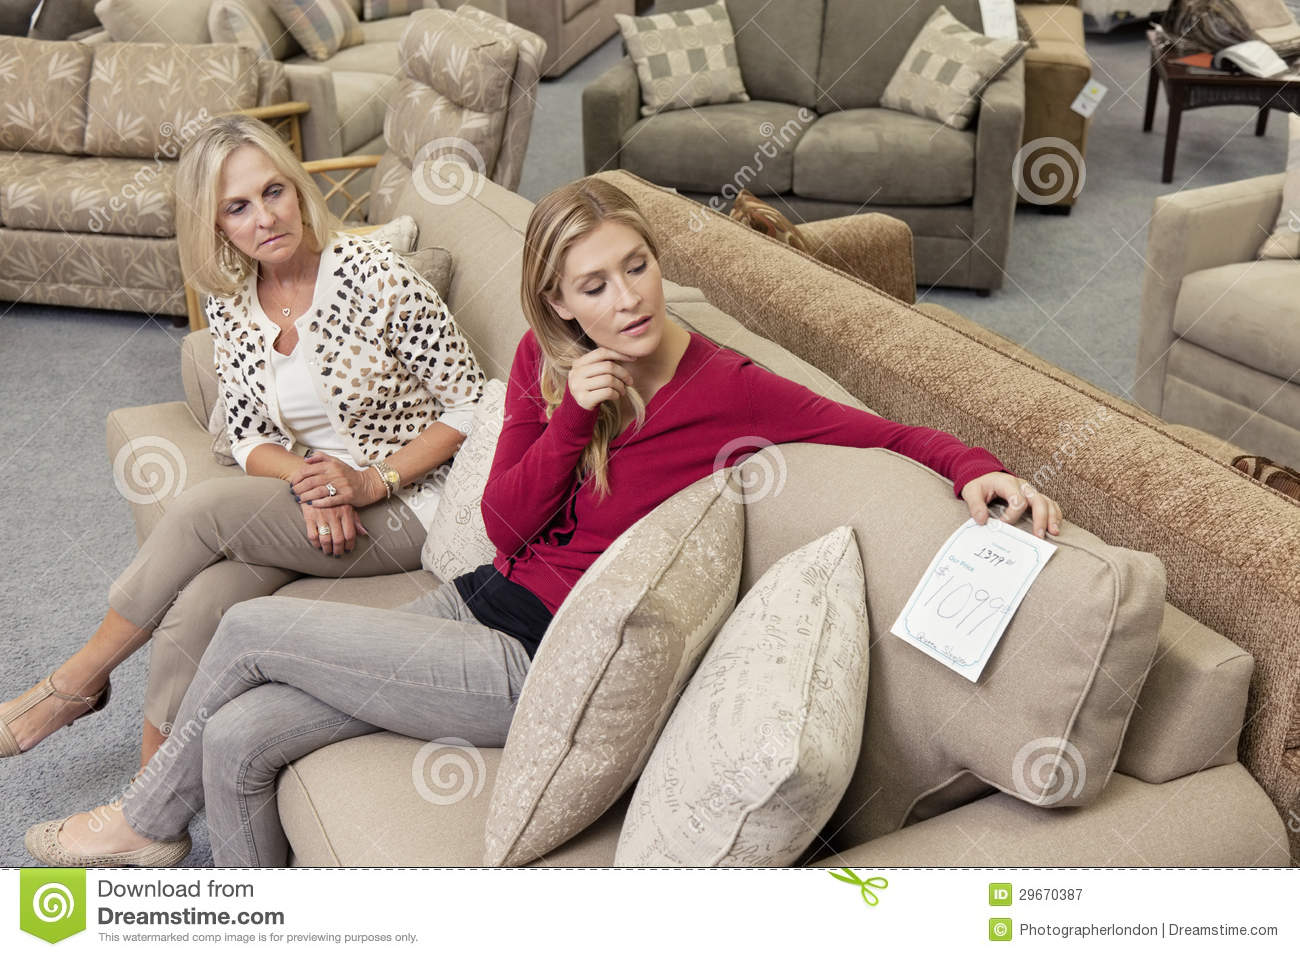 Looking For Chairs Mother And Daughter Sitting On Sofa While Looking At Price